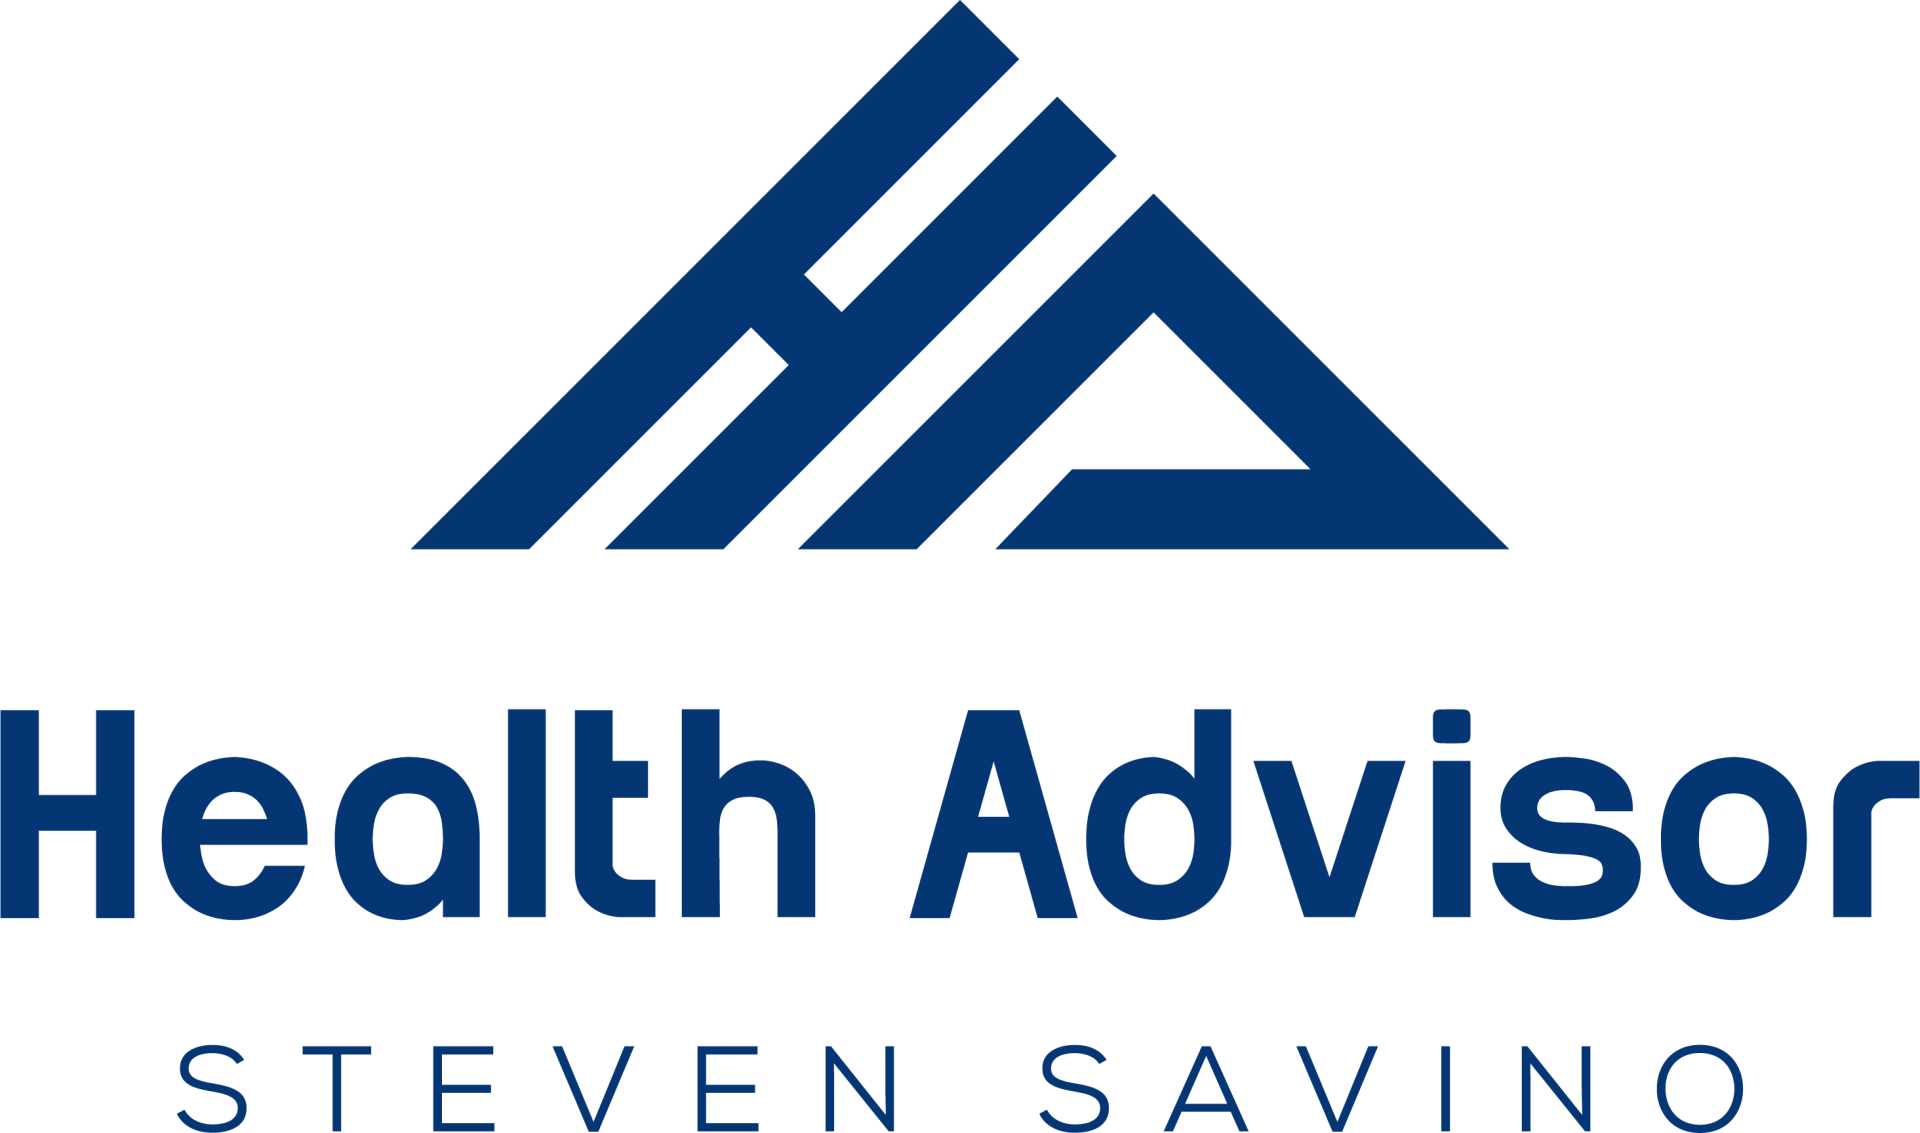 Steven Savino, the Expert Health and Insurance Advisor Announces Launch of New Website